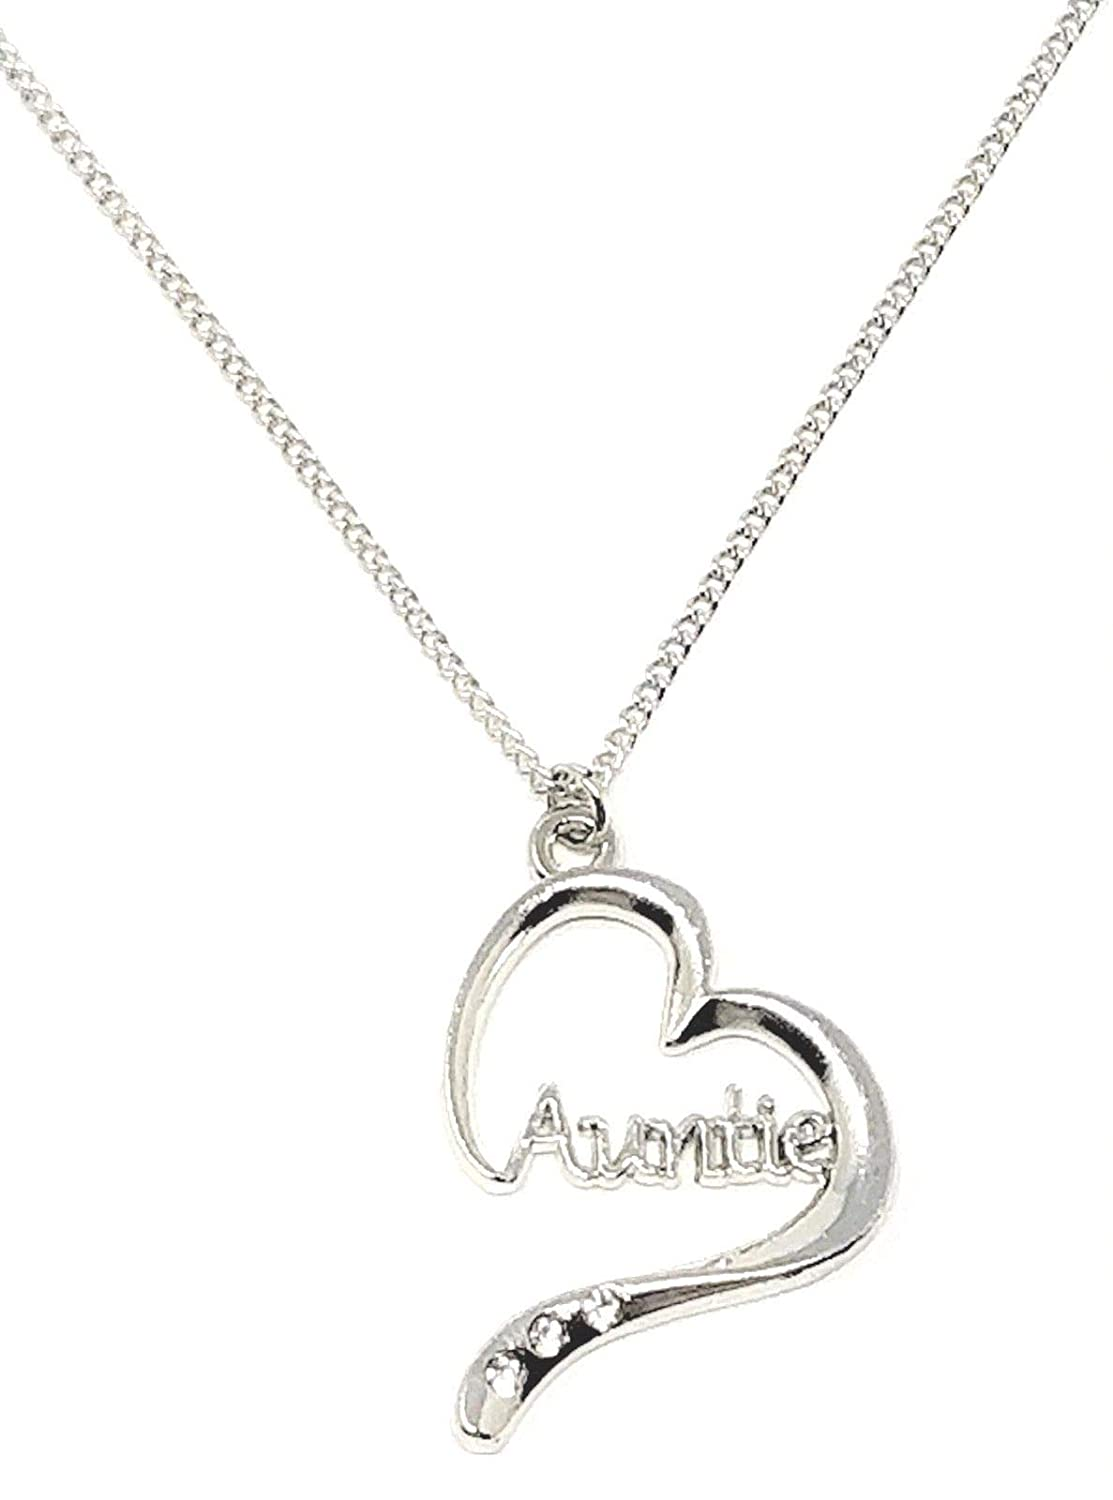 f7dd0d1938a0e Auntie Heart Shape Charm Pendant/Necklace with Love Card by Sterling Effectz